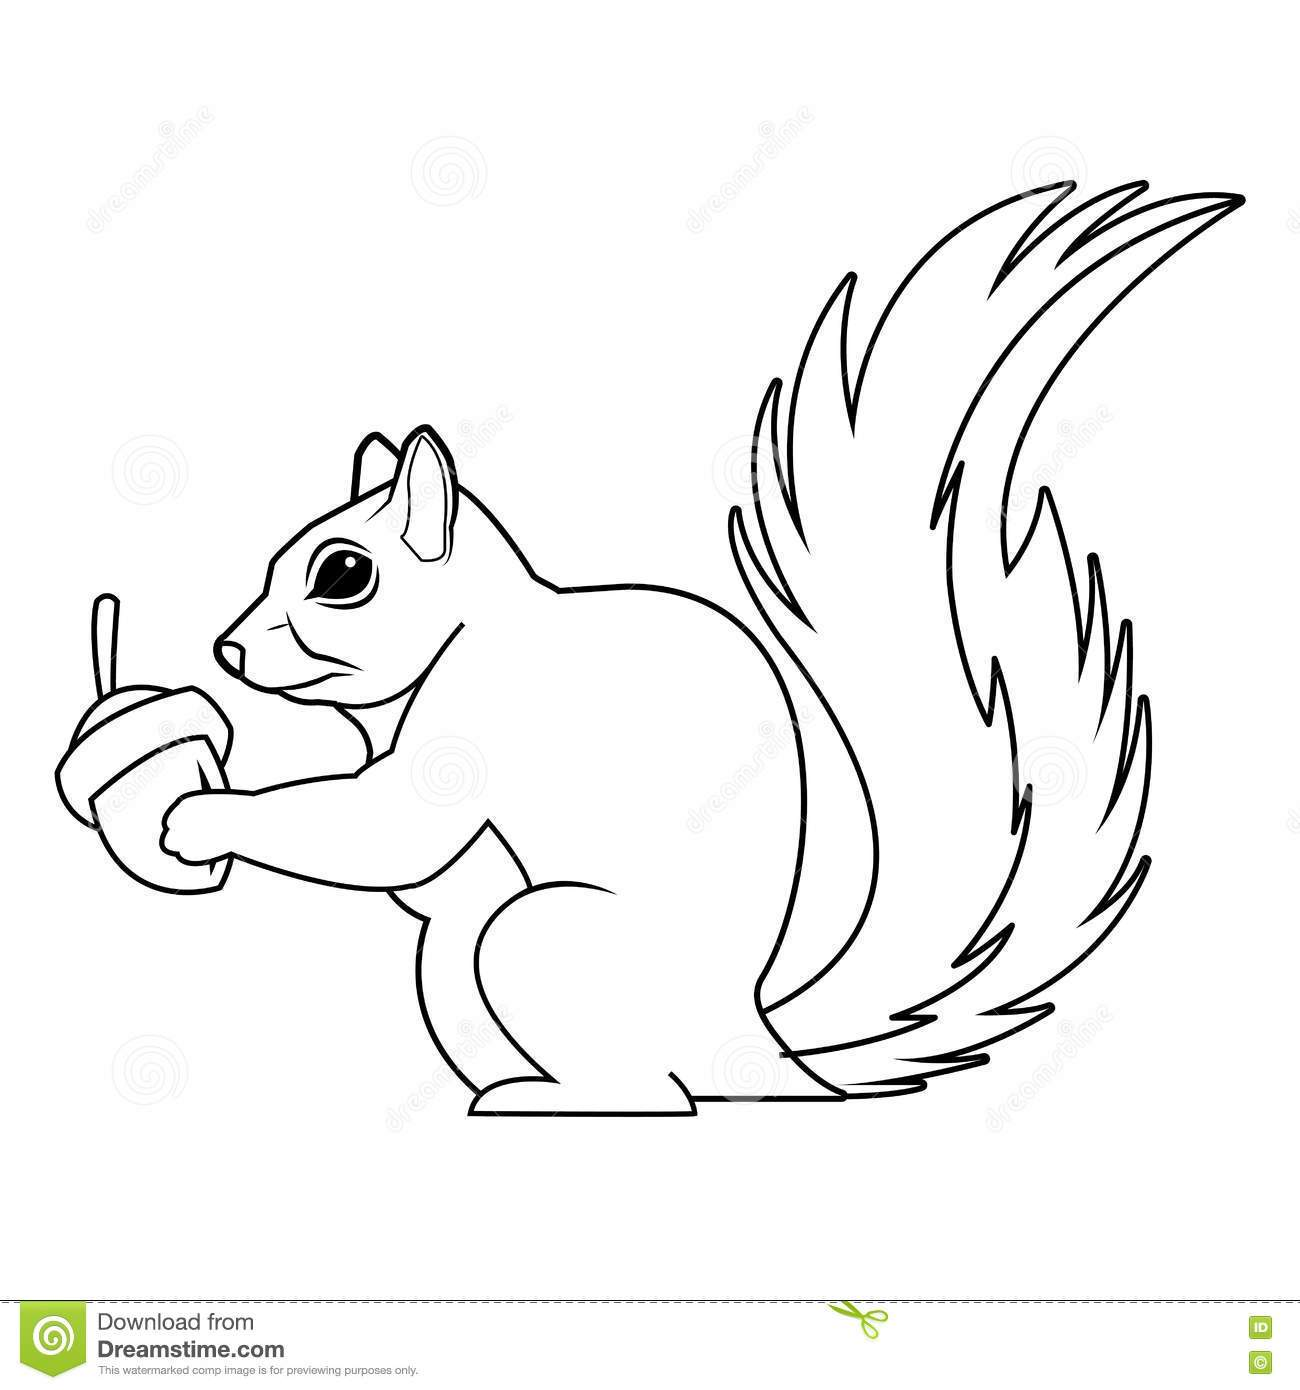 Squirrel clipart black and white picture royalty free Squirrel clipart black and white 2 » Clipart Portal picture royalty free